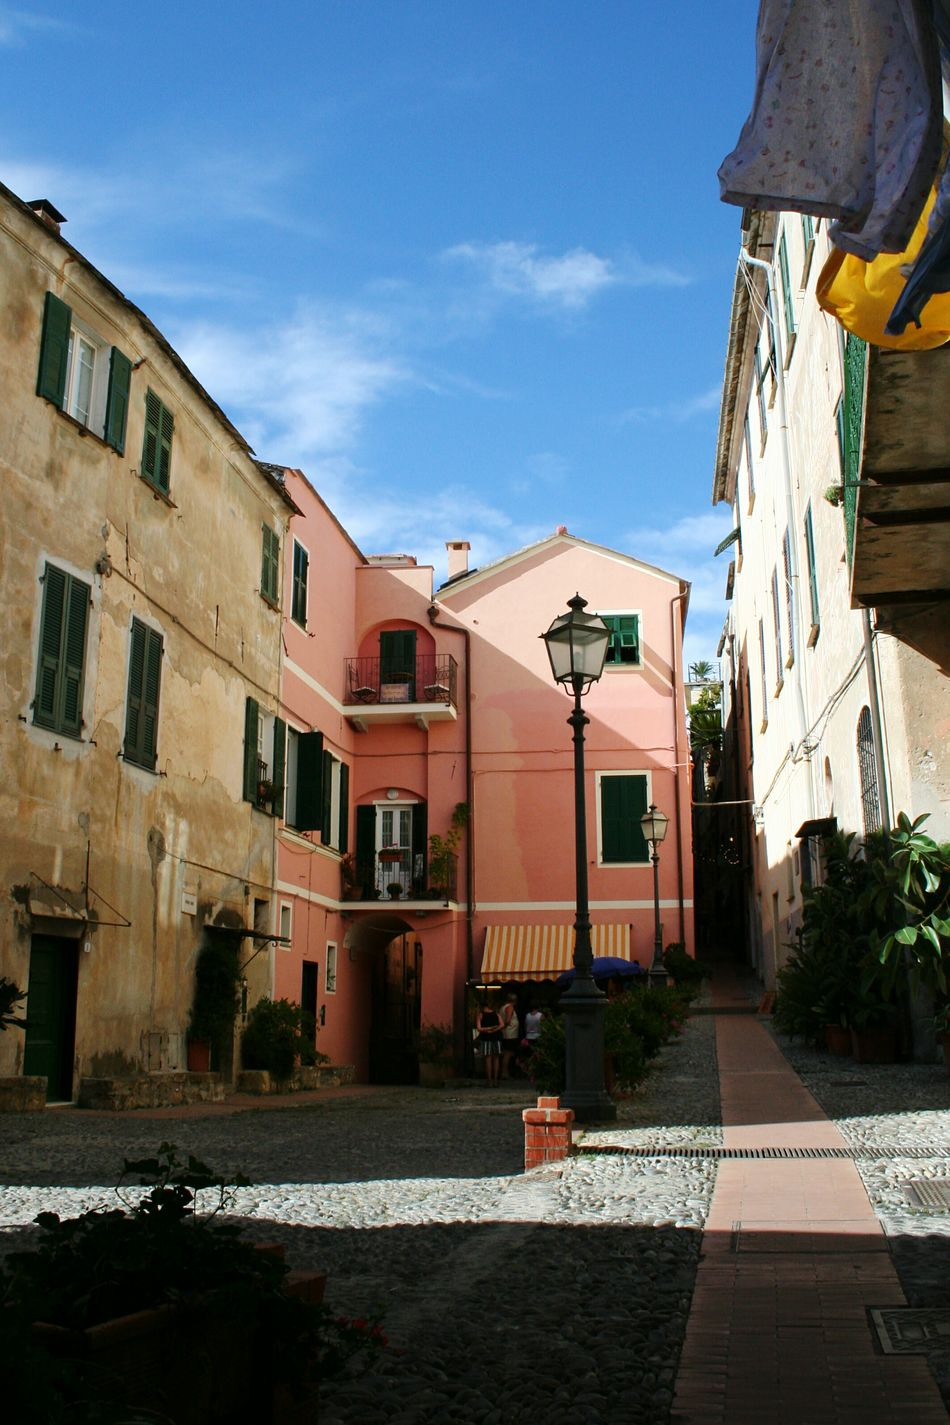 Architecture Building Exterior Built Structure Sky City Outdoors No People Day Liguria,Italy Old Buildings Architectural Details Italian Village  Travel Destinations Mediterranean Village Sunlight Vicolo Del Paese Narrow Street Old Street